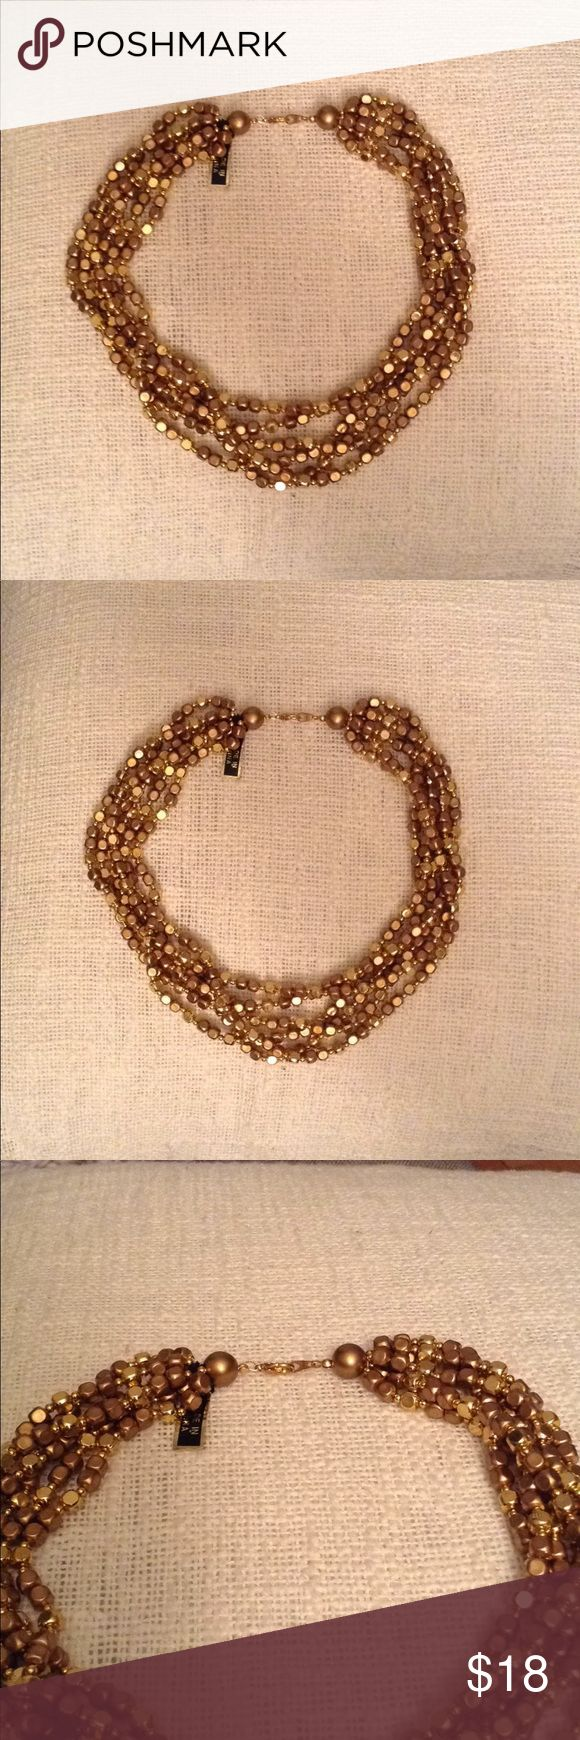 ✨Chunky Gold Necklace✨ New chunky gold necklace. Lord & Taylor Jewelry Necklaces #GoldJewelleryChunky